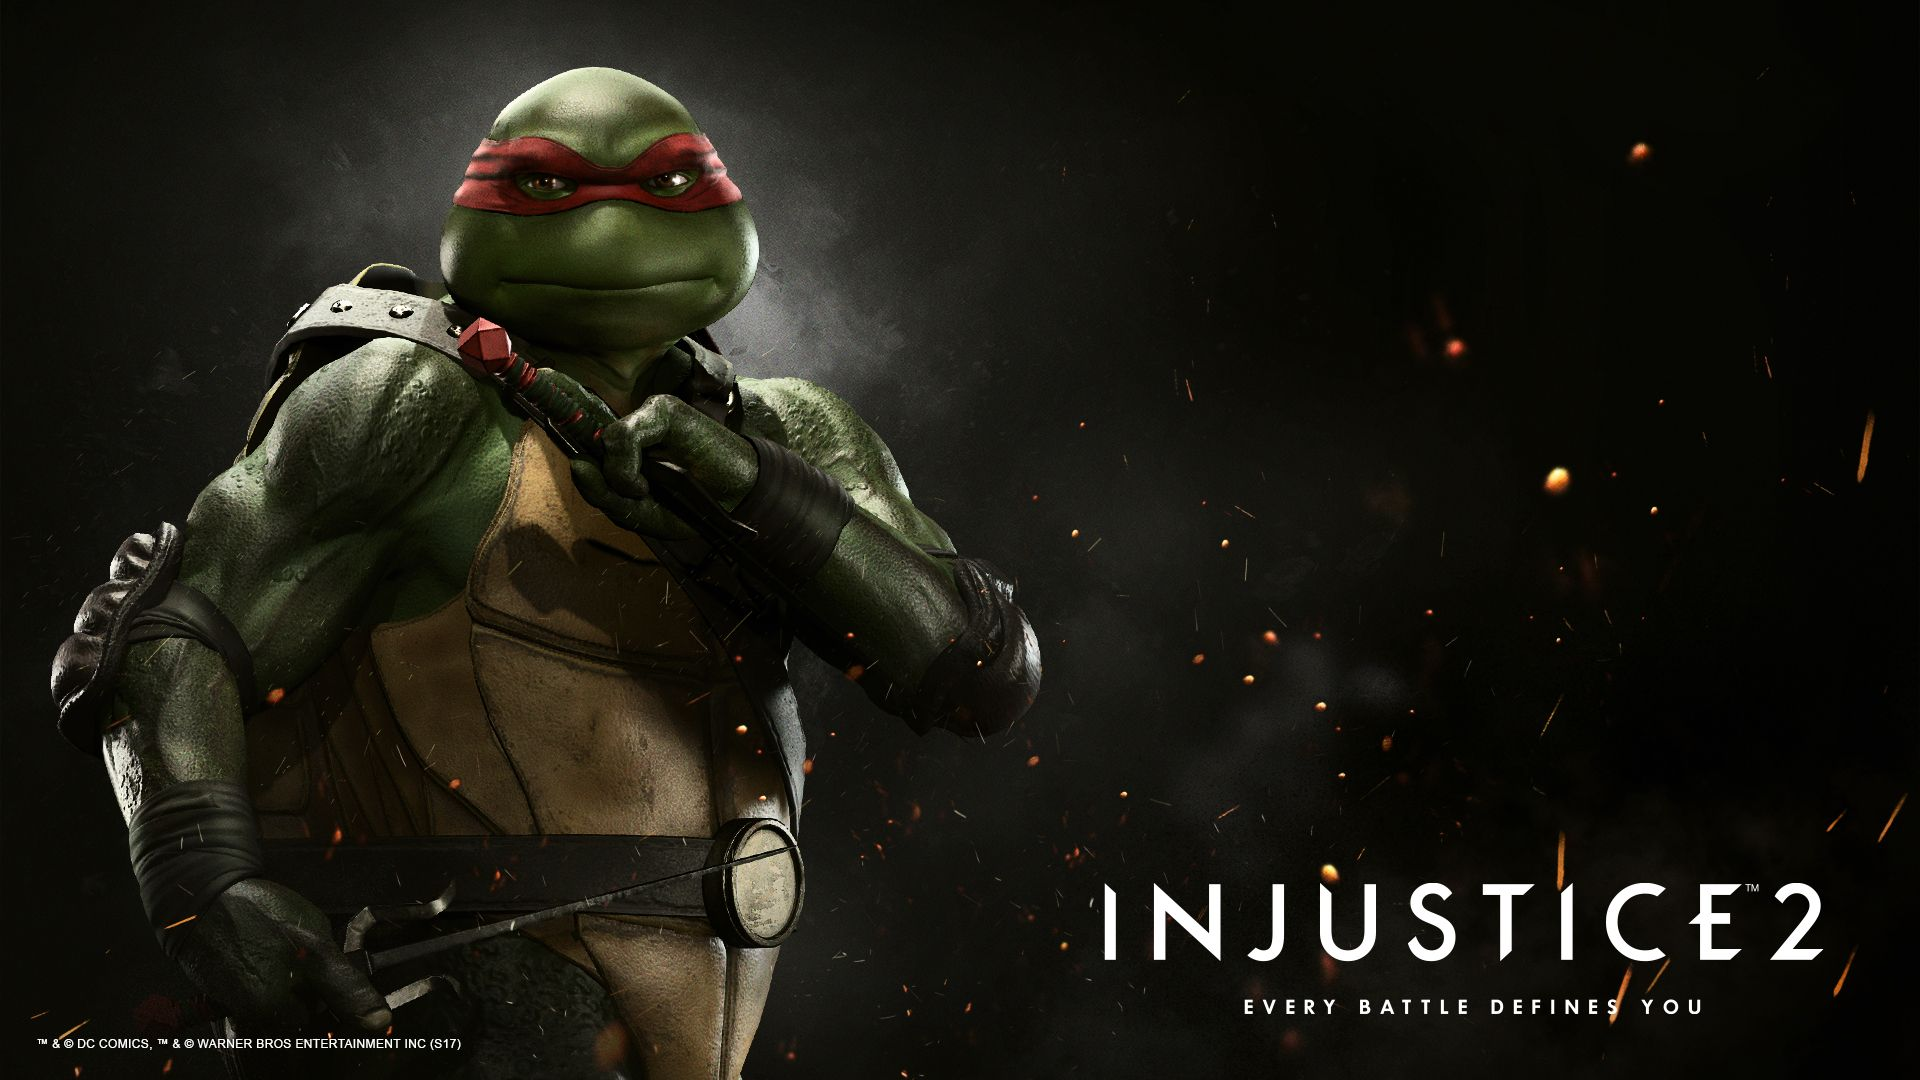 Injustice2-RAPHAEL-wallpaper-1920x1080-110.jpg